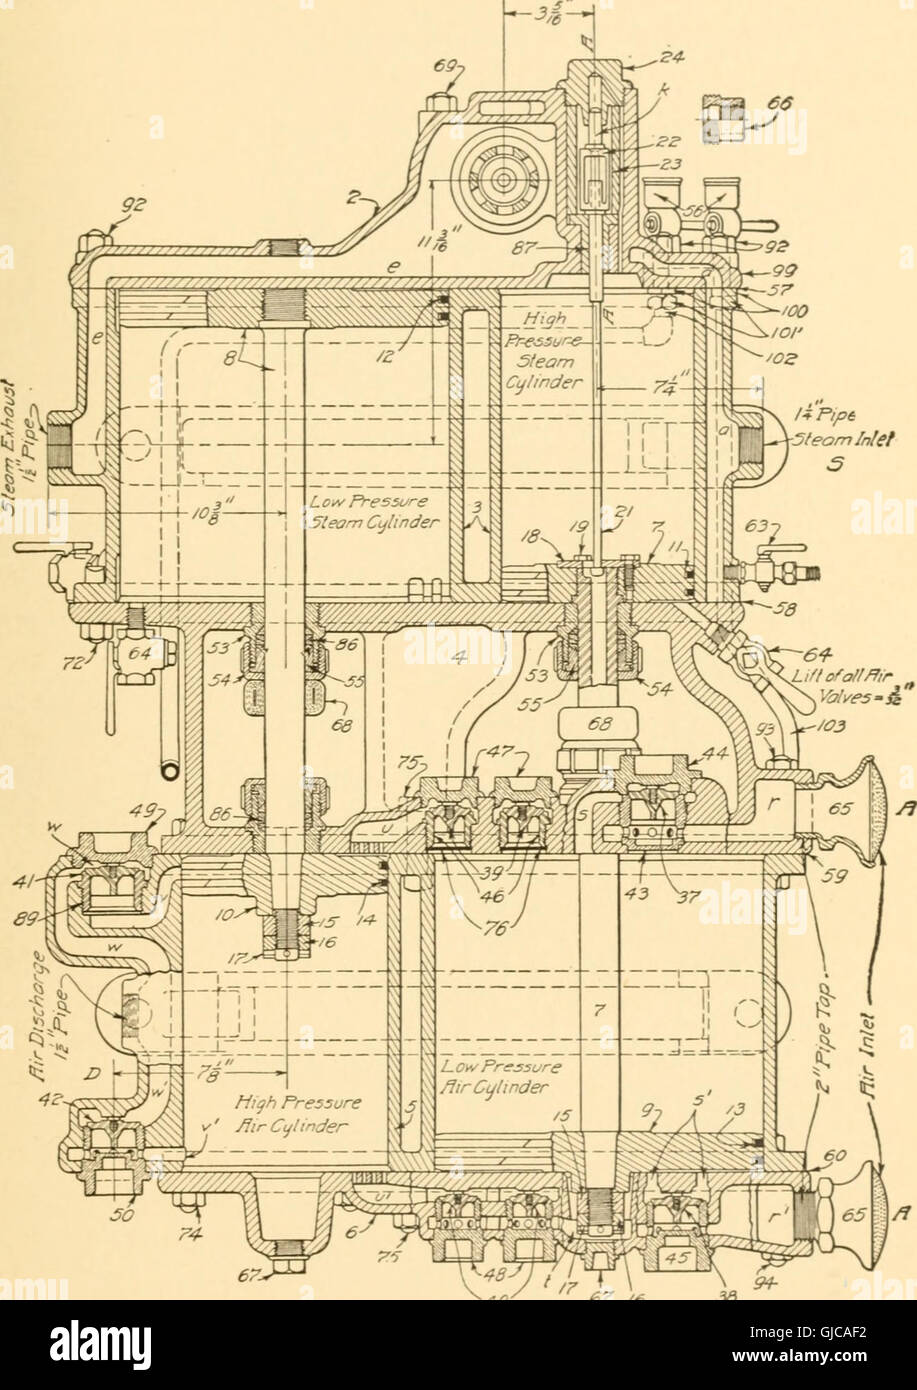 hight resolution of air brakes an up to date treatise on the westinghouse air brake as designed for passenger and freight service and for electric cars 1918